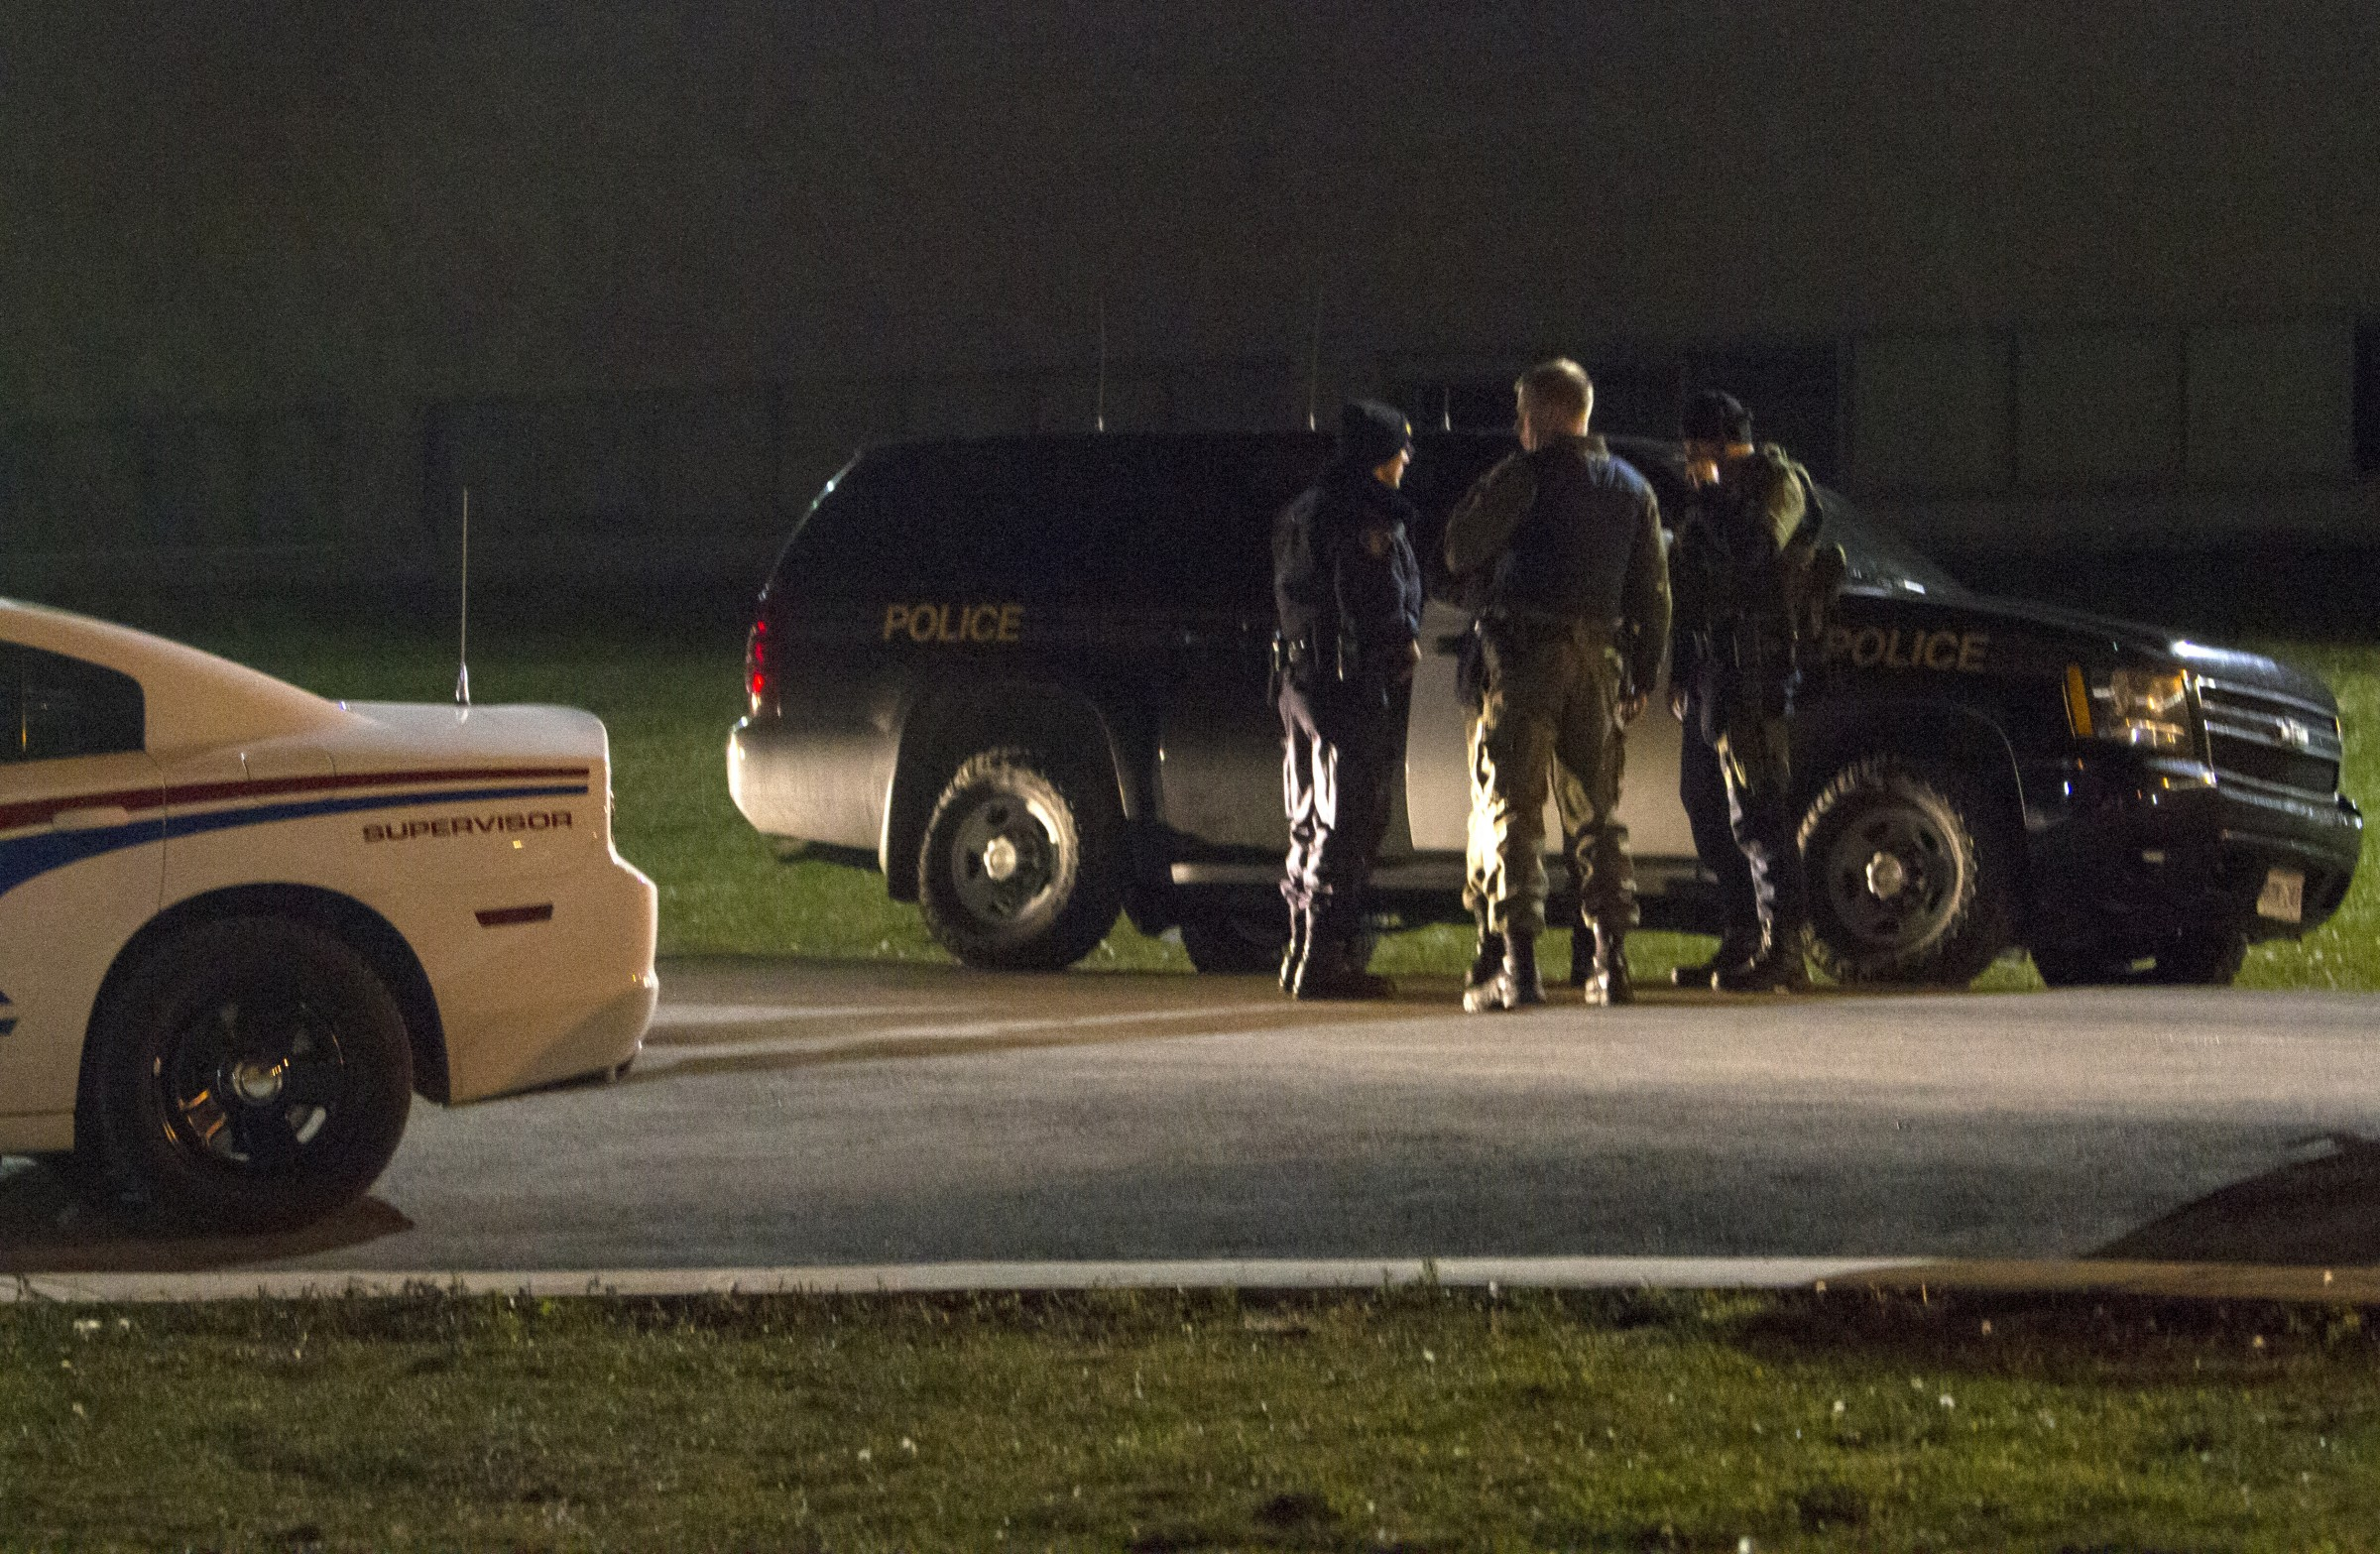 BELLEVILLE, Ont. (22/11/13) - Members of the Belleville Police and the Ontario Provincial Police block the roadway between Loyalist College and the residence located behind the school. Photo by Victoria Thoms.